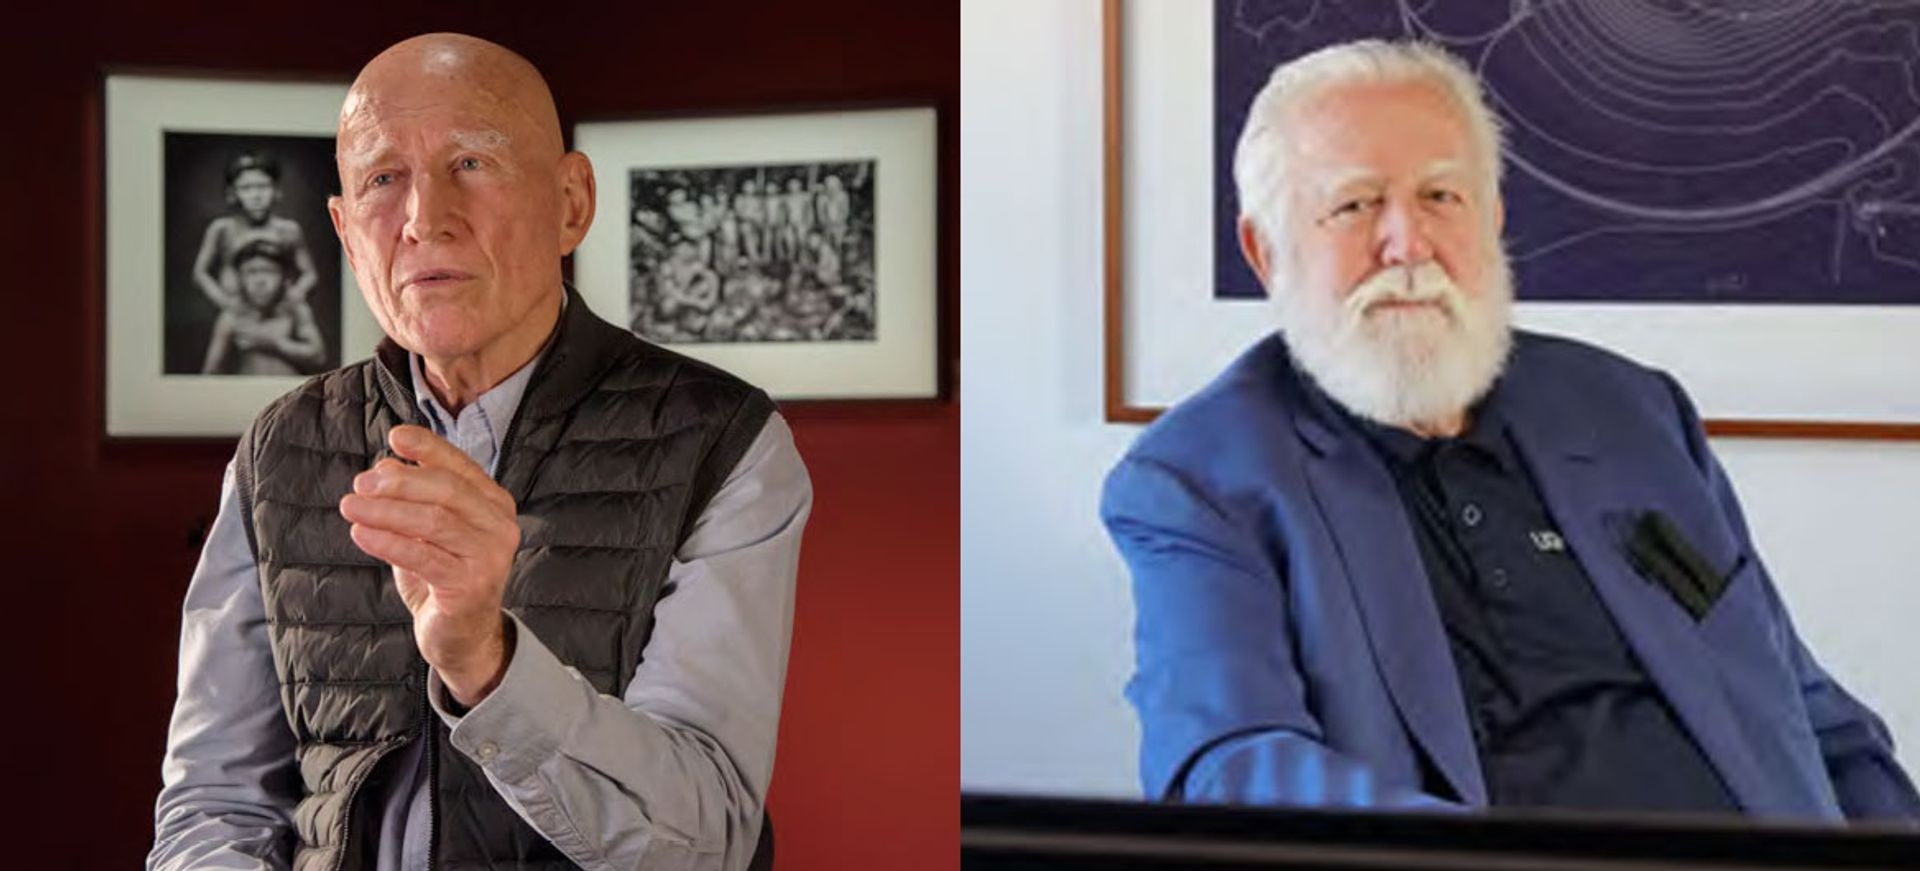 Sebastião Salgado (left) and James Turrell are among the all-male laureates for this year's Praemium Imperiale Award